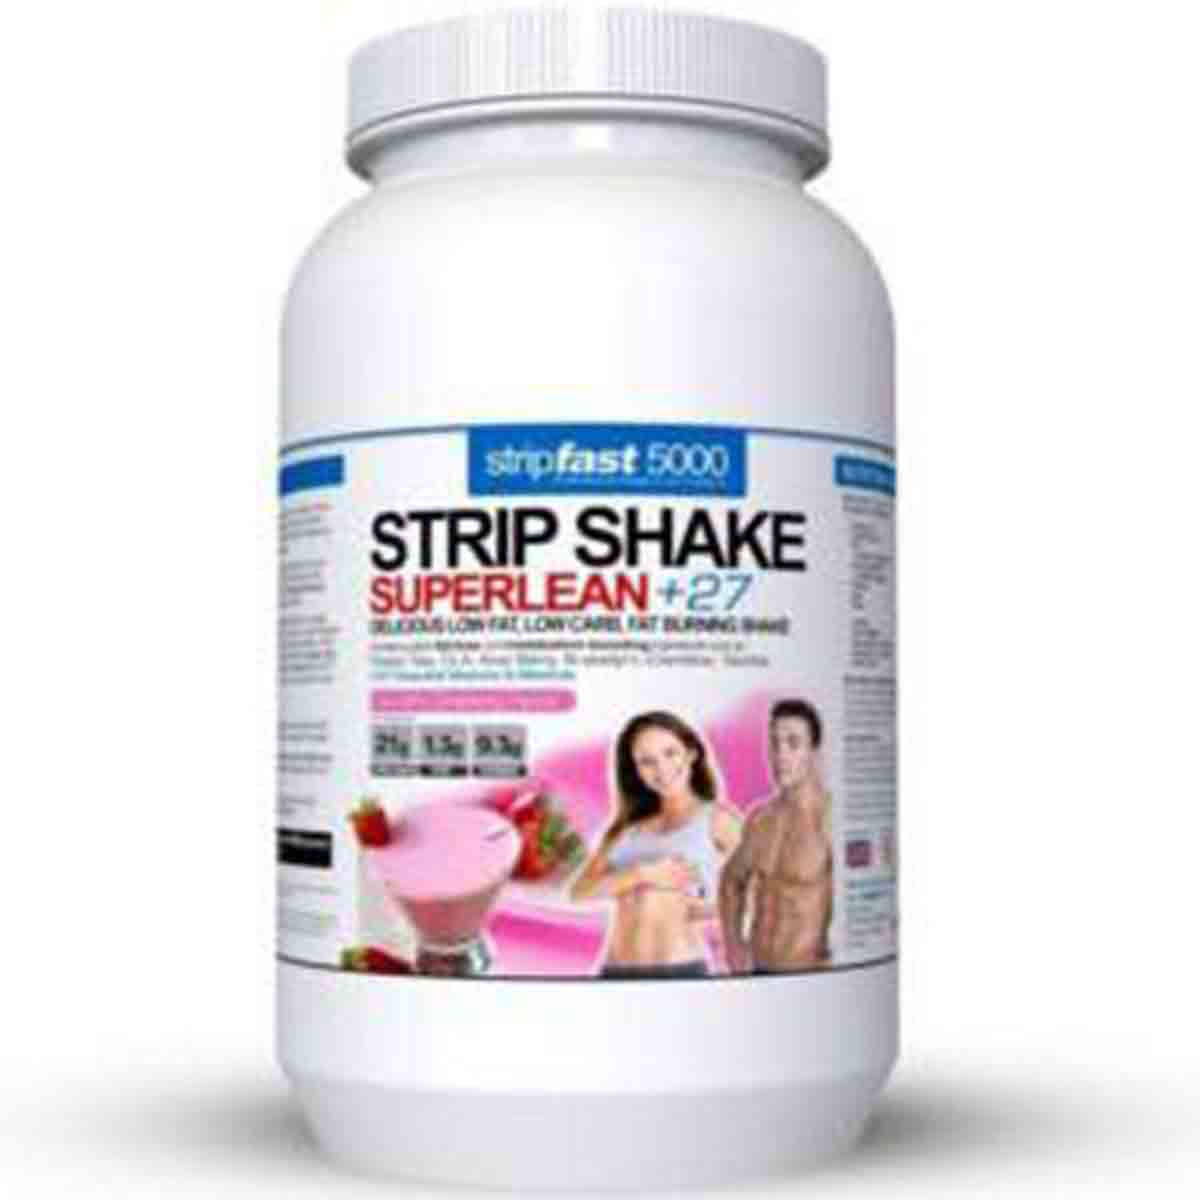 StripFast 5000 Strip Shake